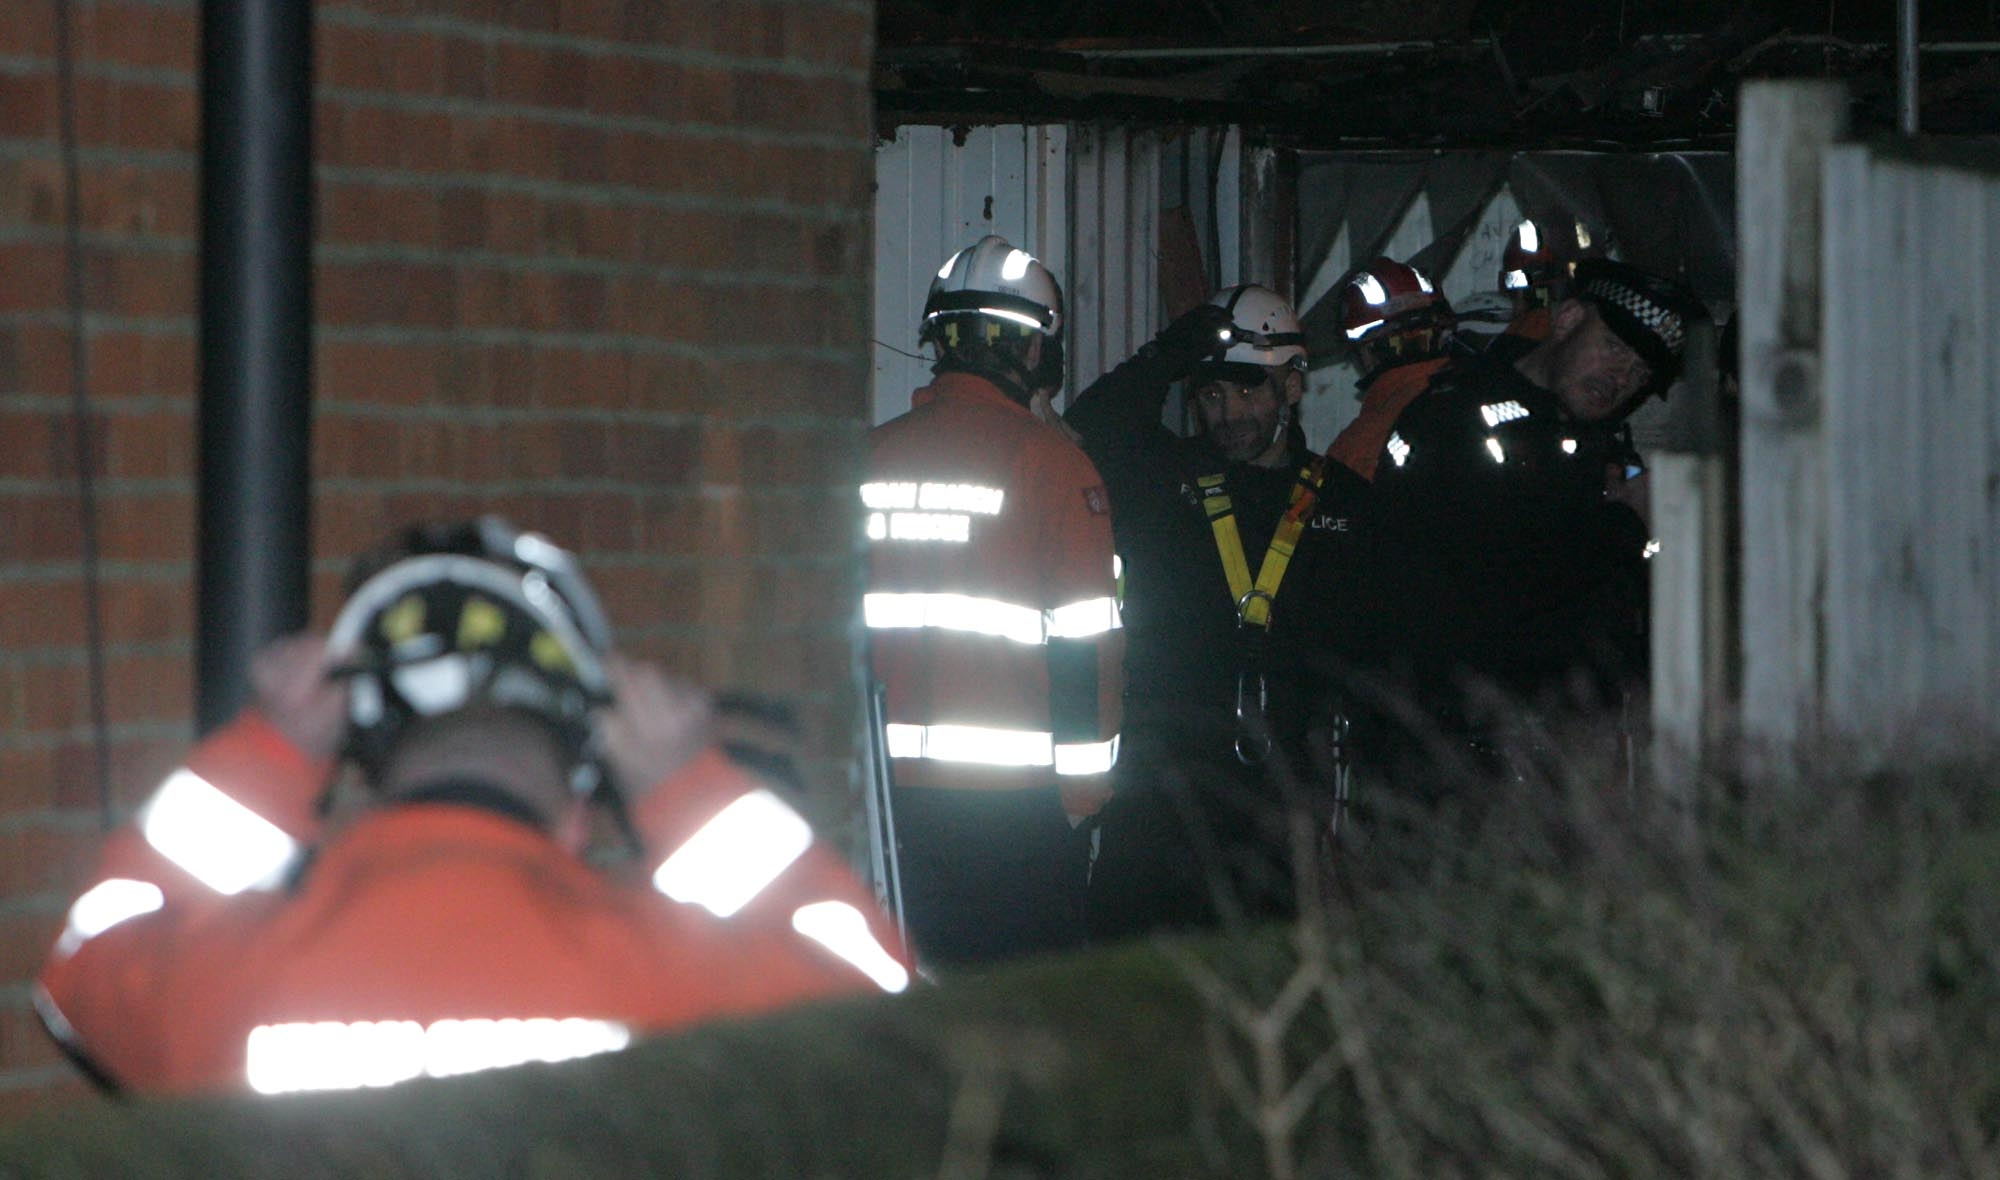 Specialist police teams search Hampshire home